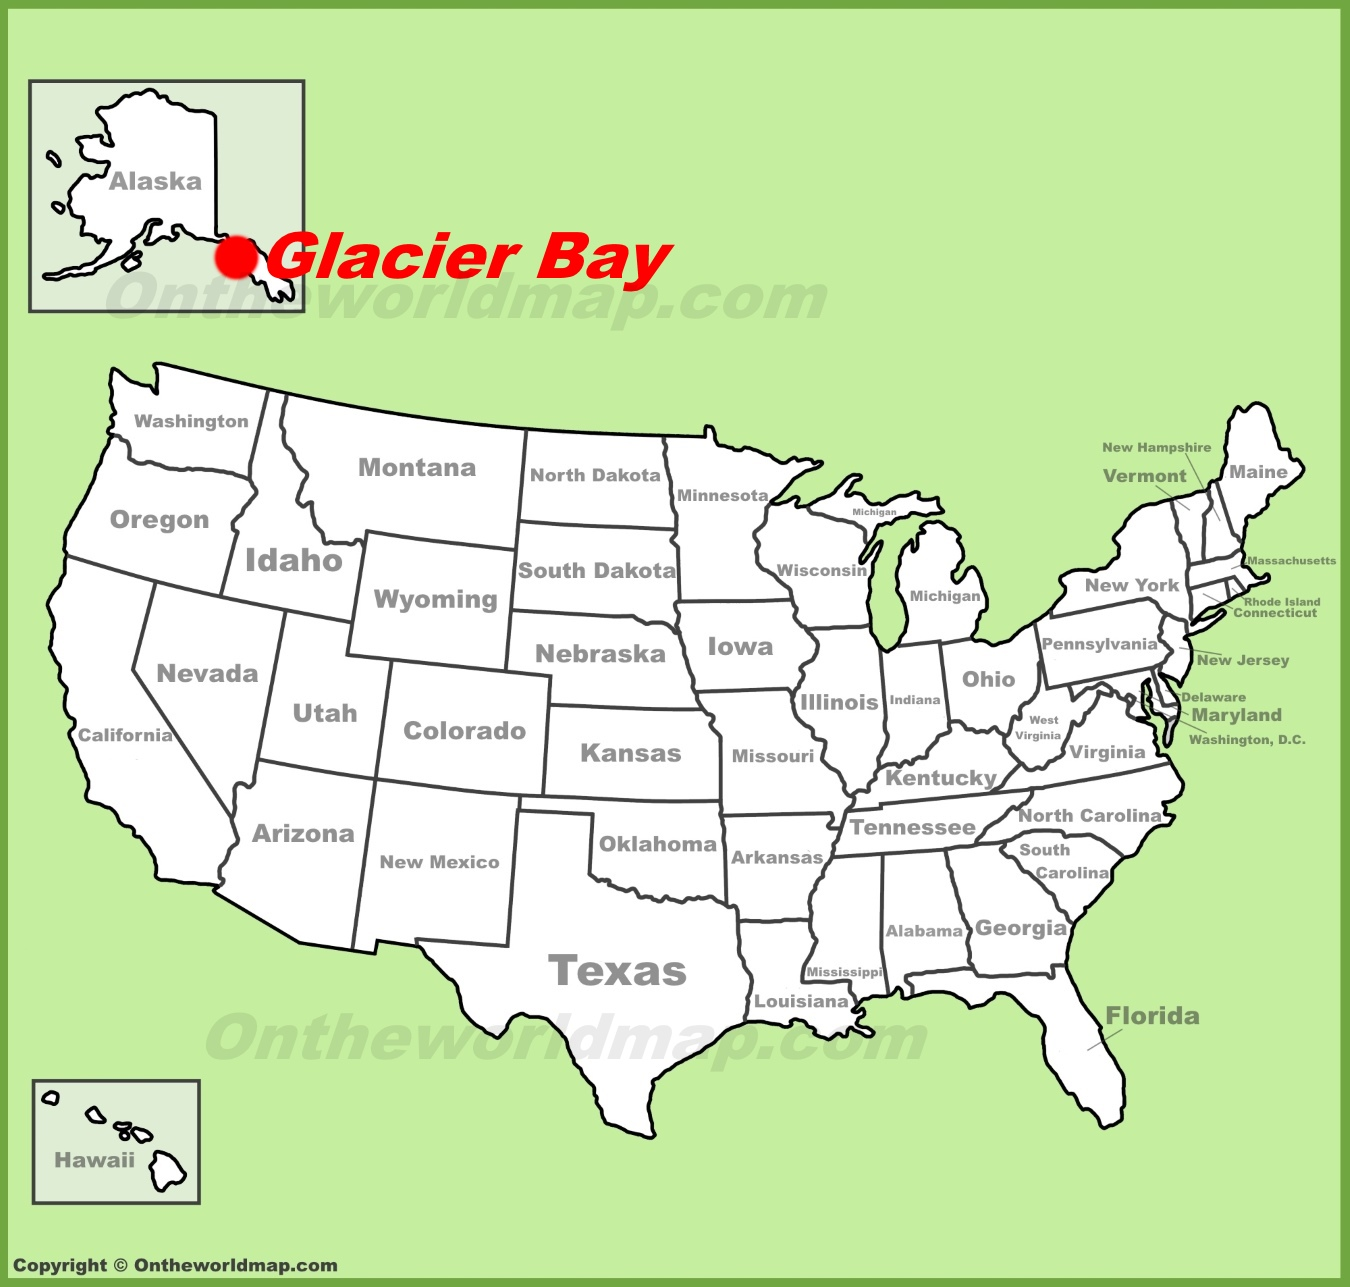 Glacier Bay National Park location on the US Map